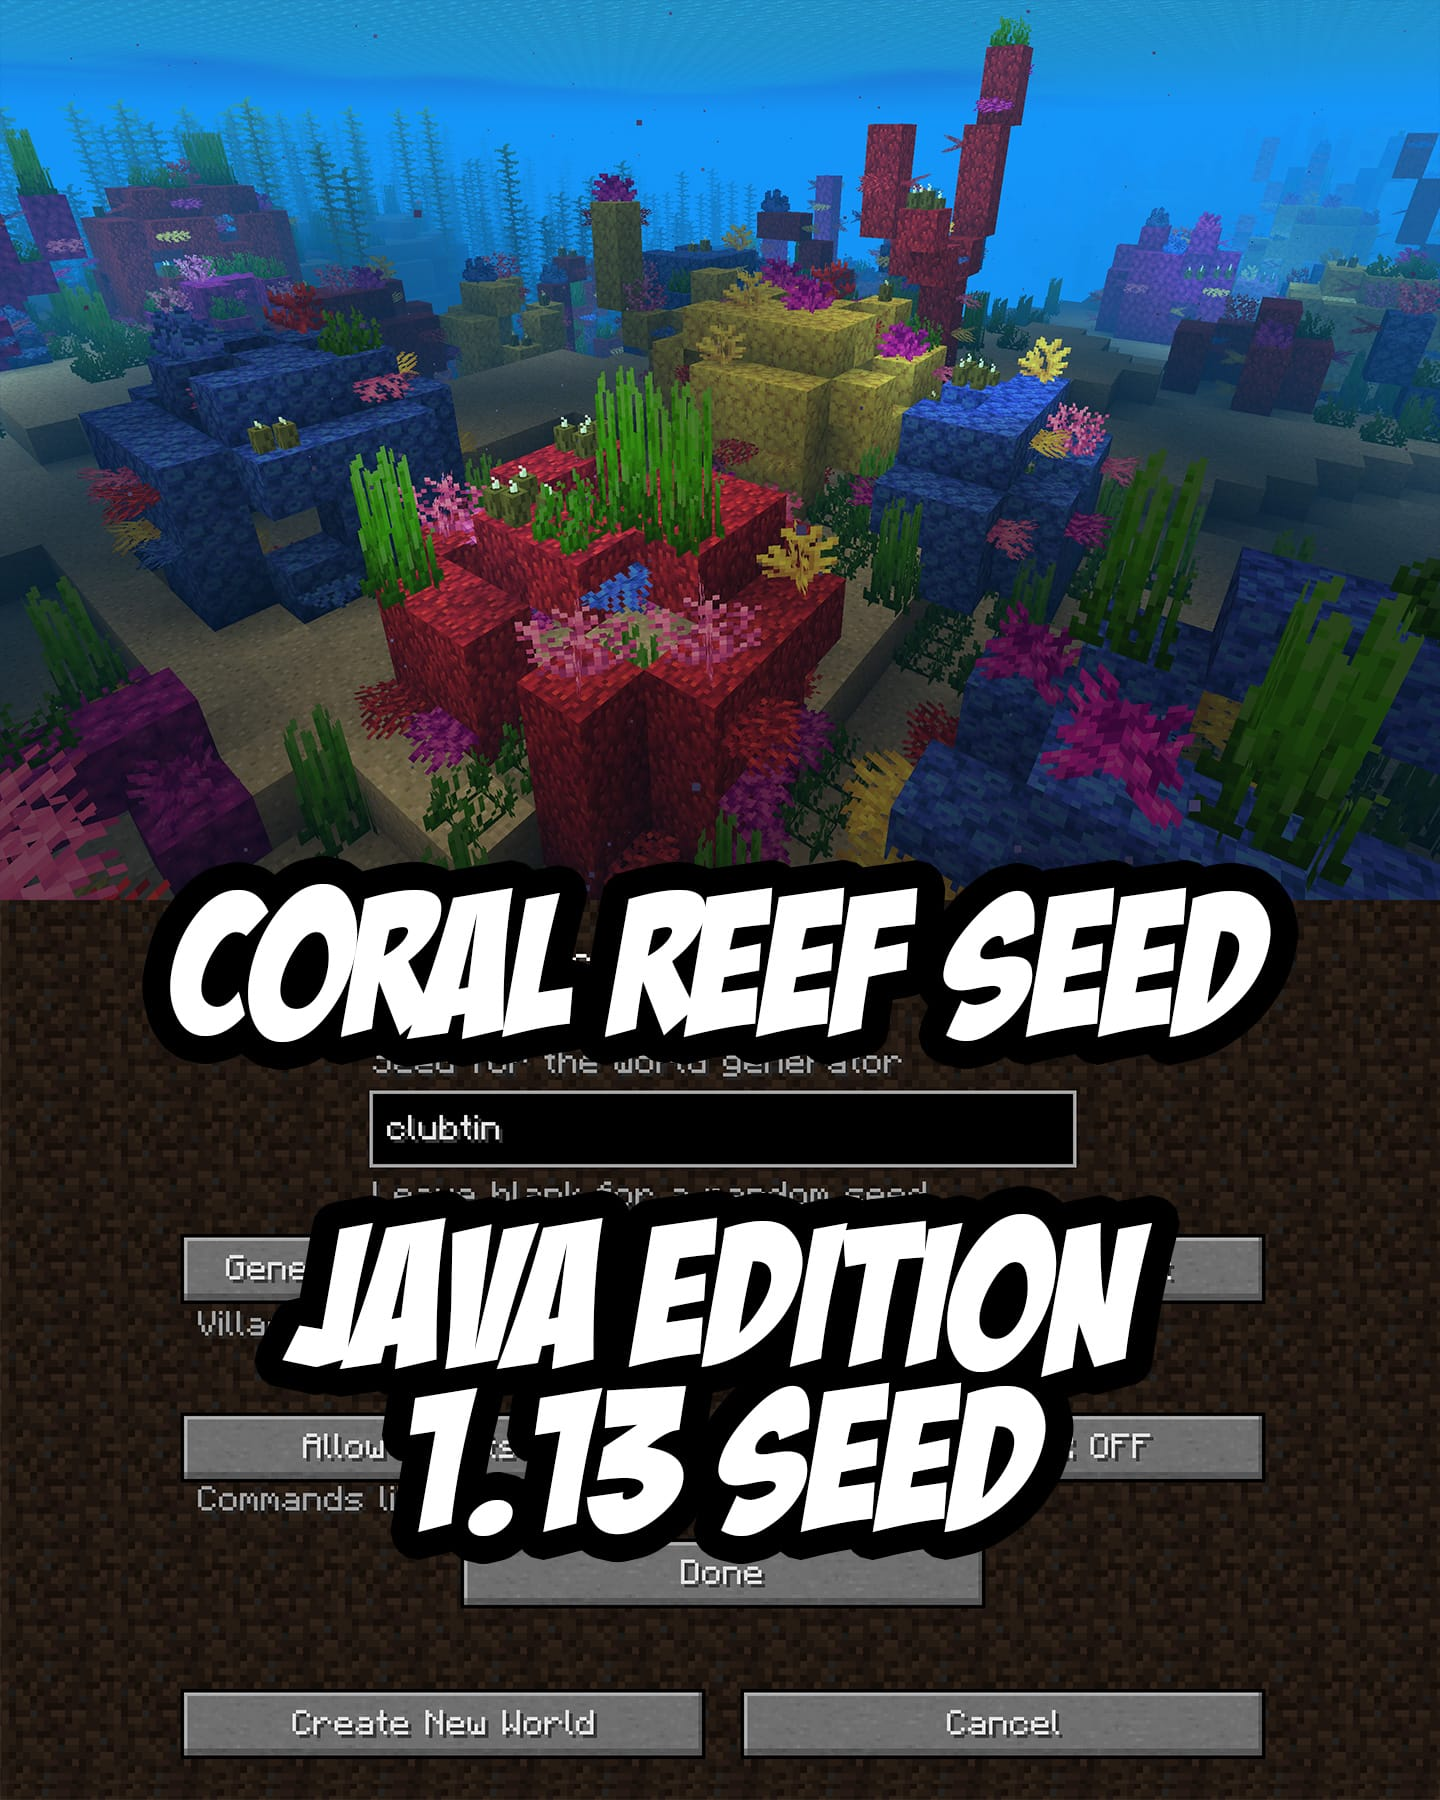 Coral Reef Seed for Minecraft Java Edition. Seed:clubtin